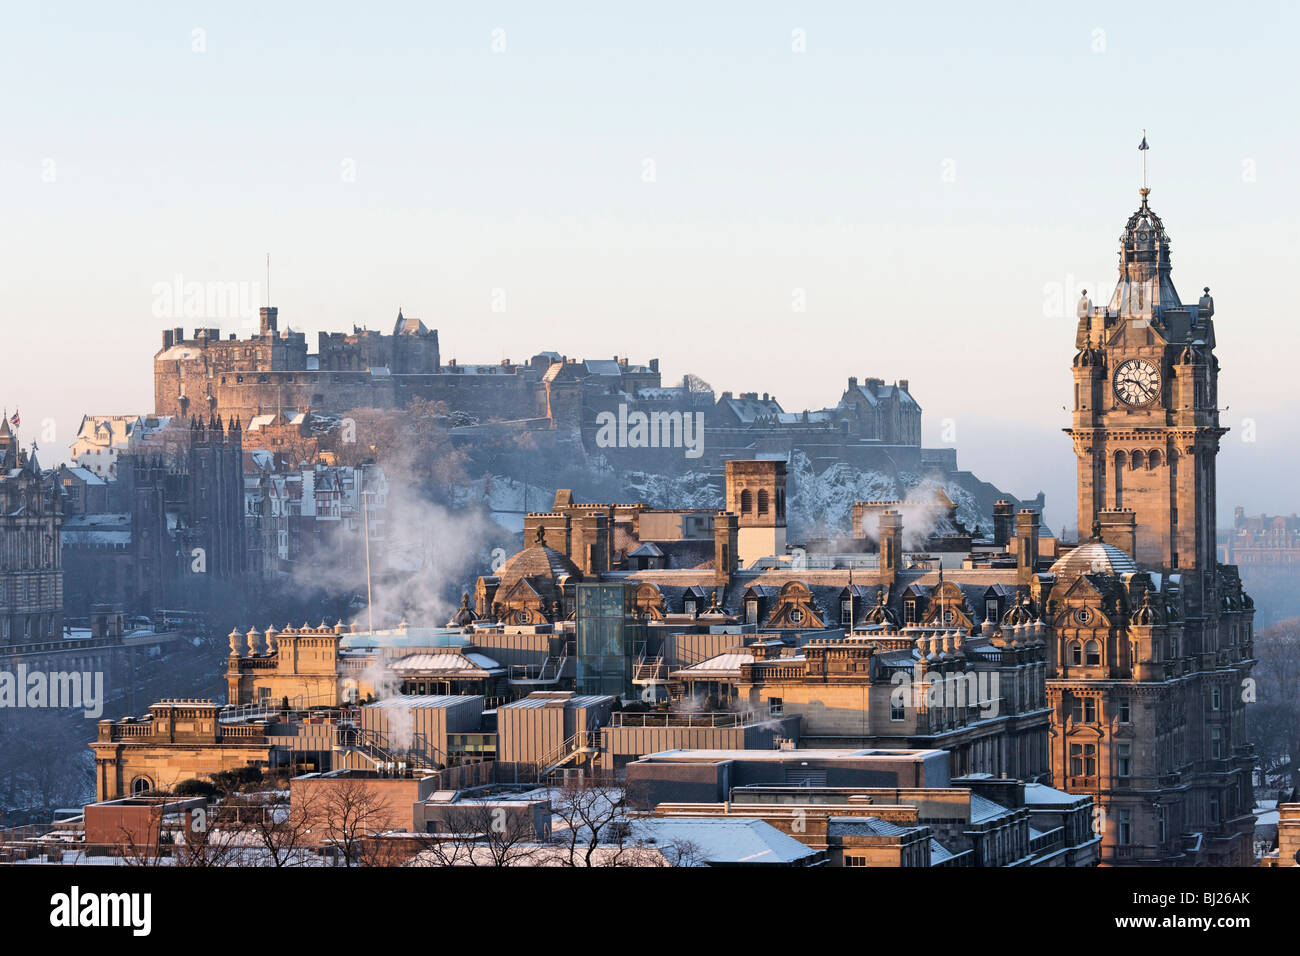 edinburgh-castle-and-the-clocktower-of-t